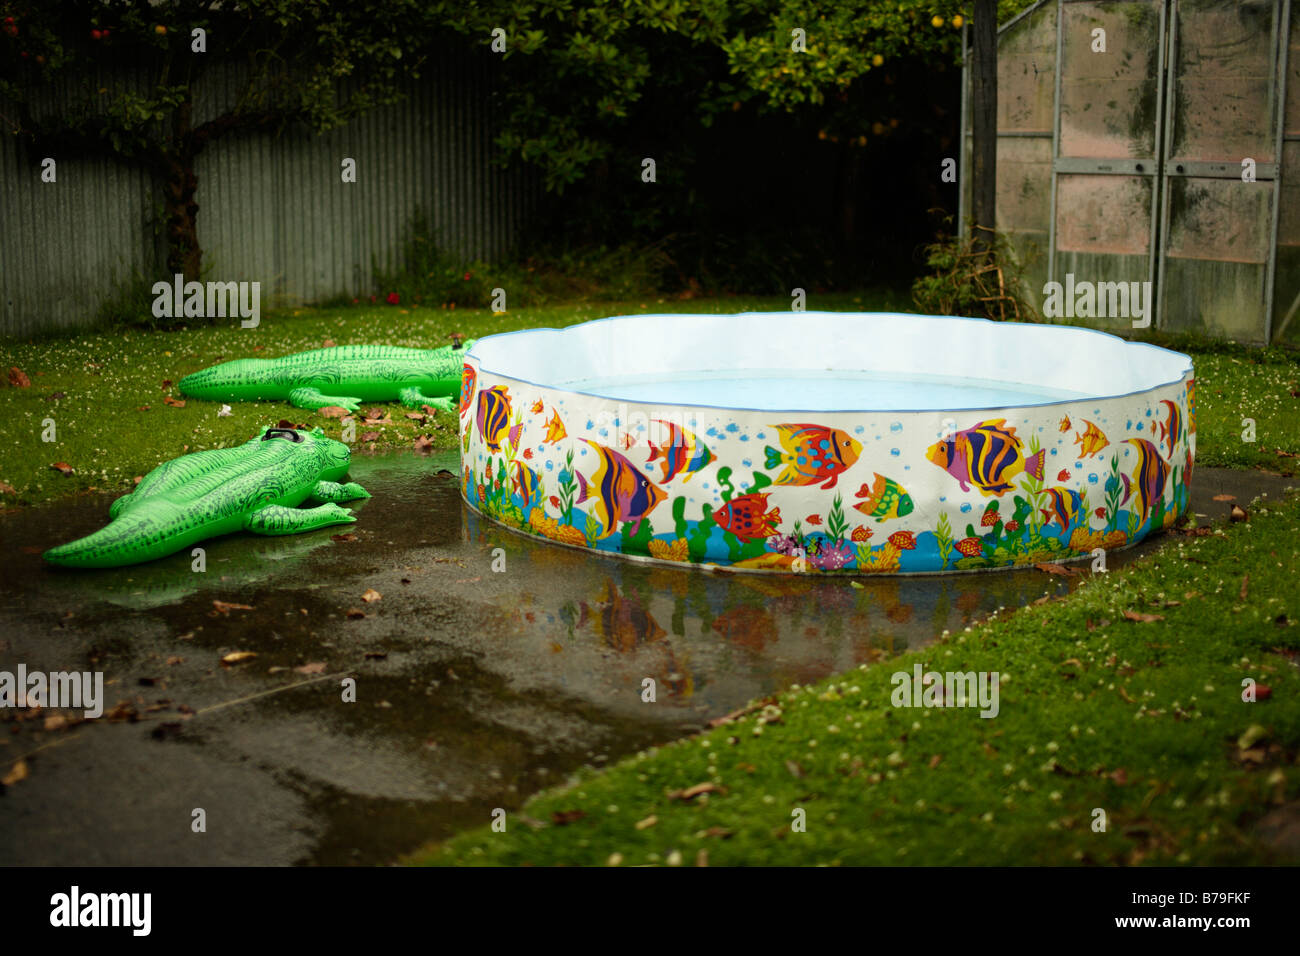 Paddling pool in the rain - Stock Image